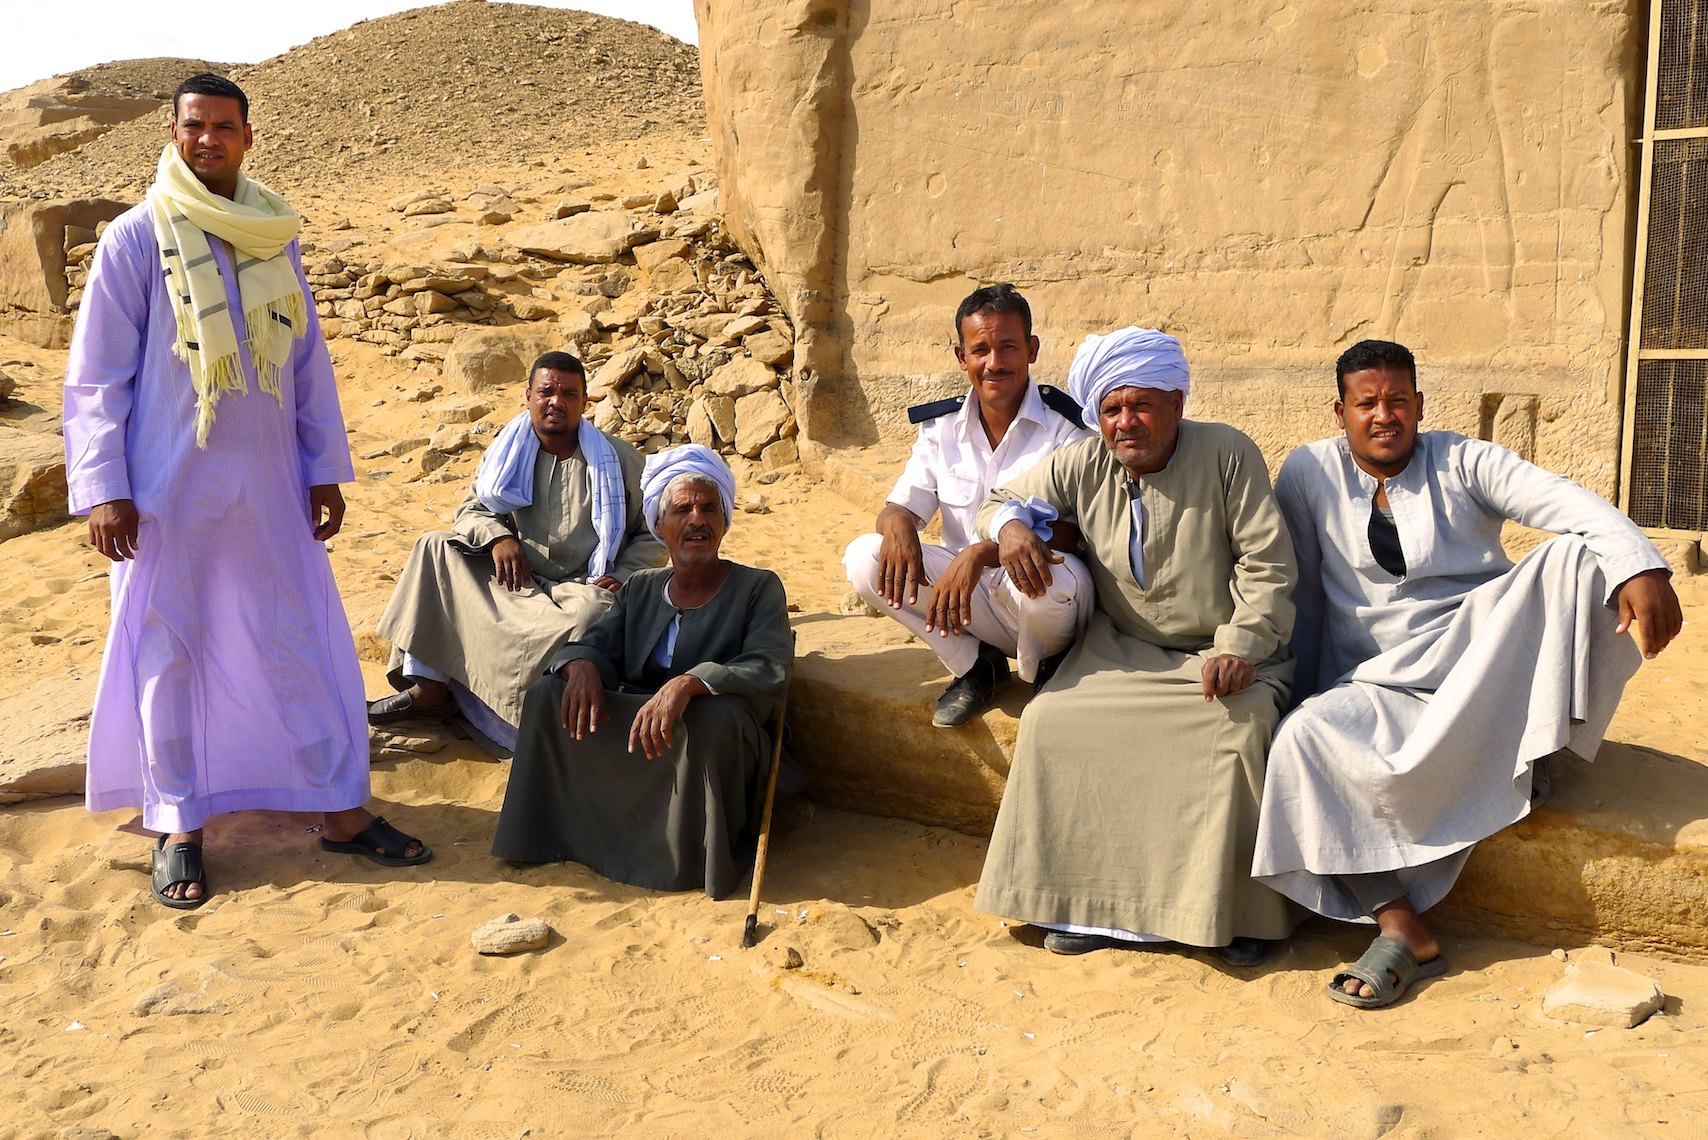 Barth_Egypt_portrait 002.jpg